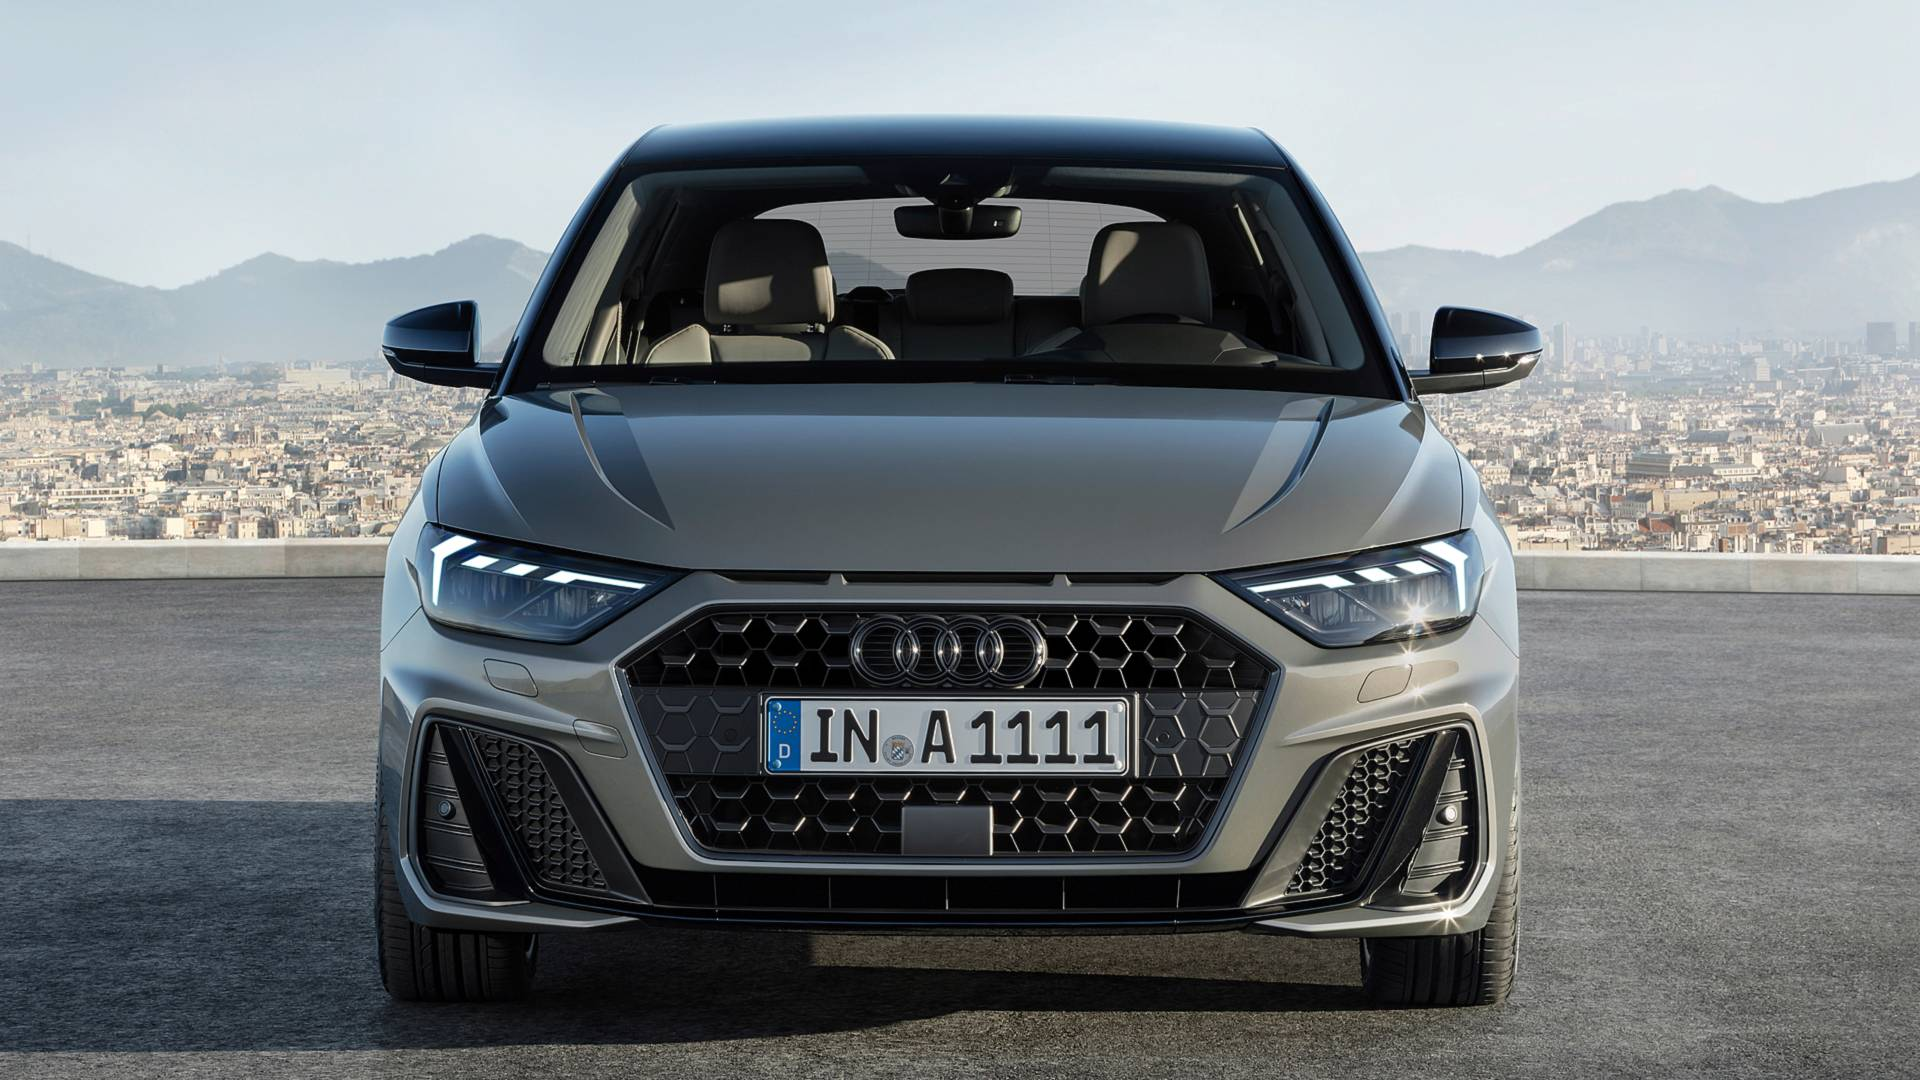 Audi A3 Sportback Interieur 2019 Audi A3 Could Be Game Changer For Audi